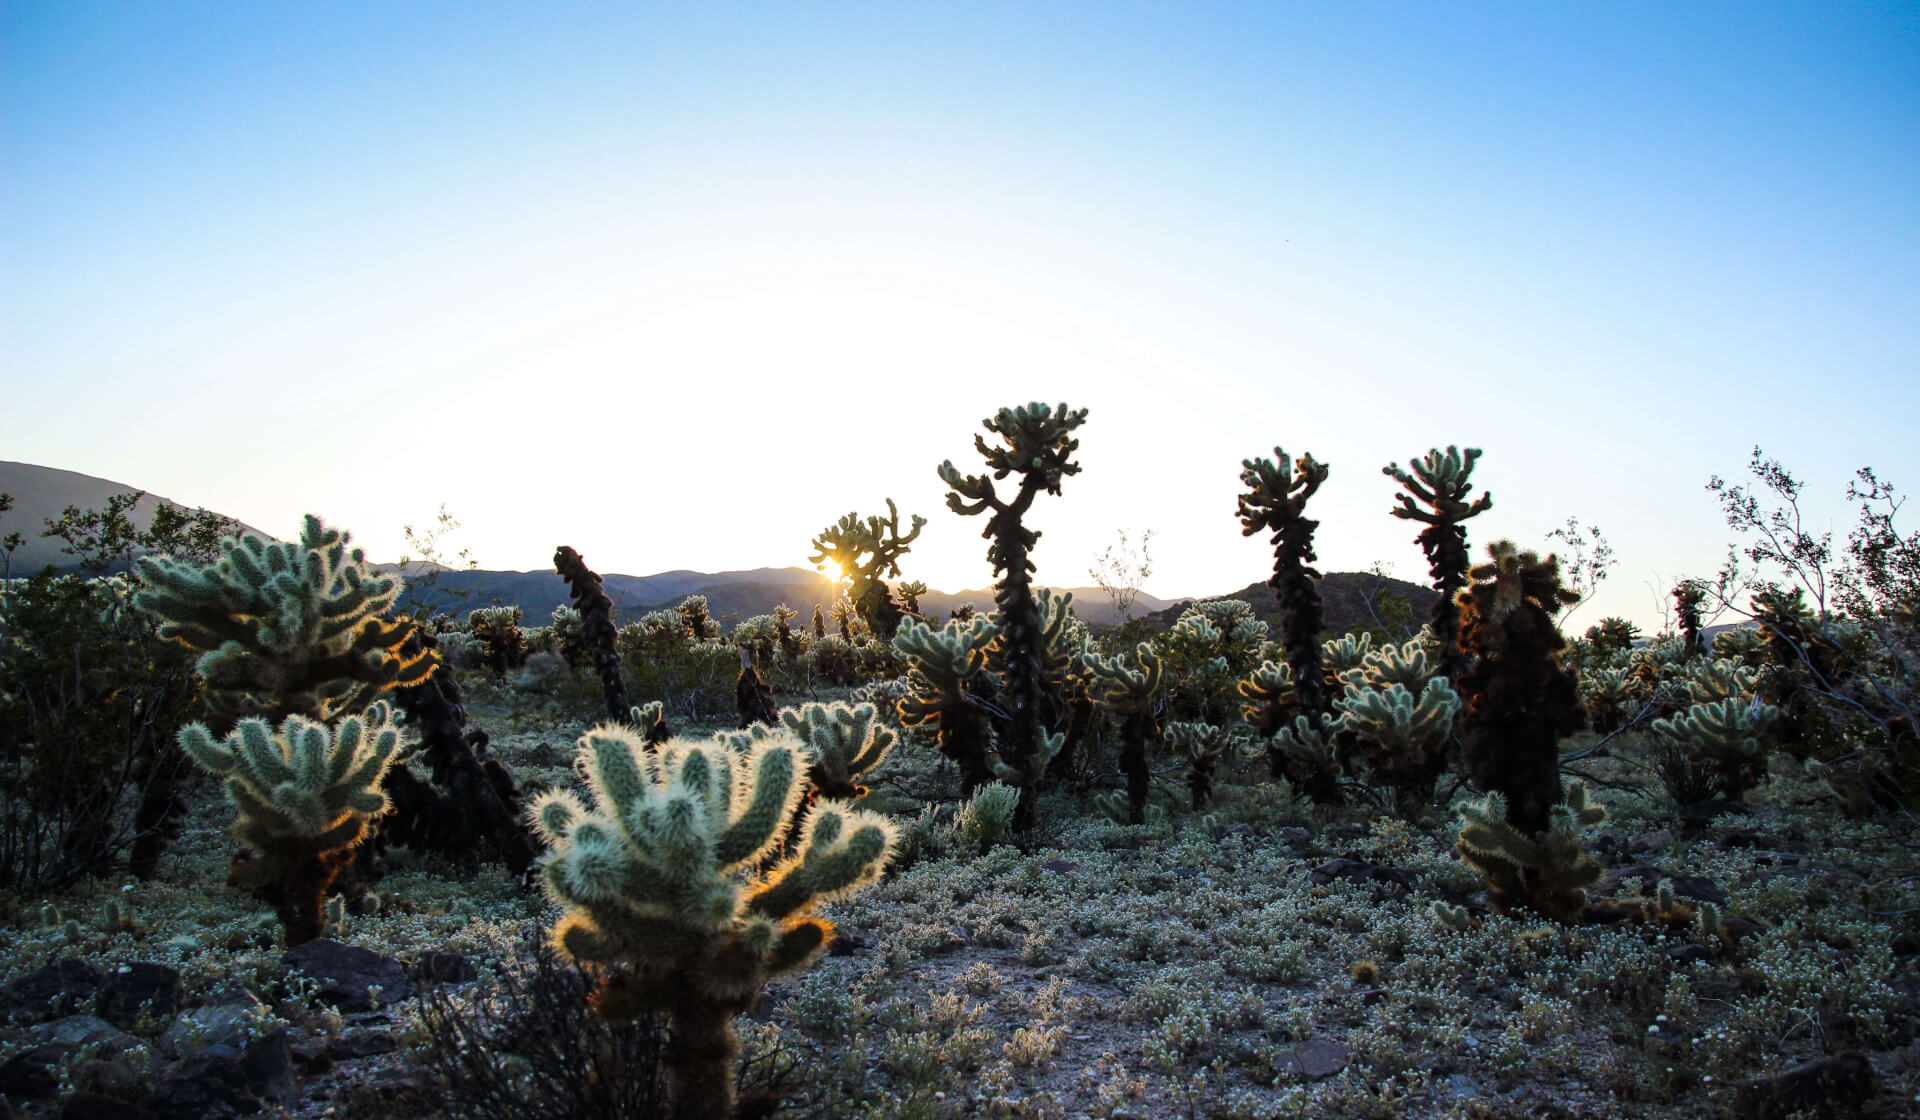 Joshua trees in a desert as the sun rises in Joshua Tree National Park, California